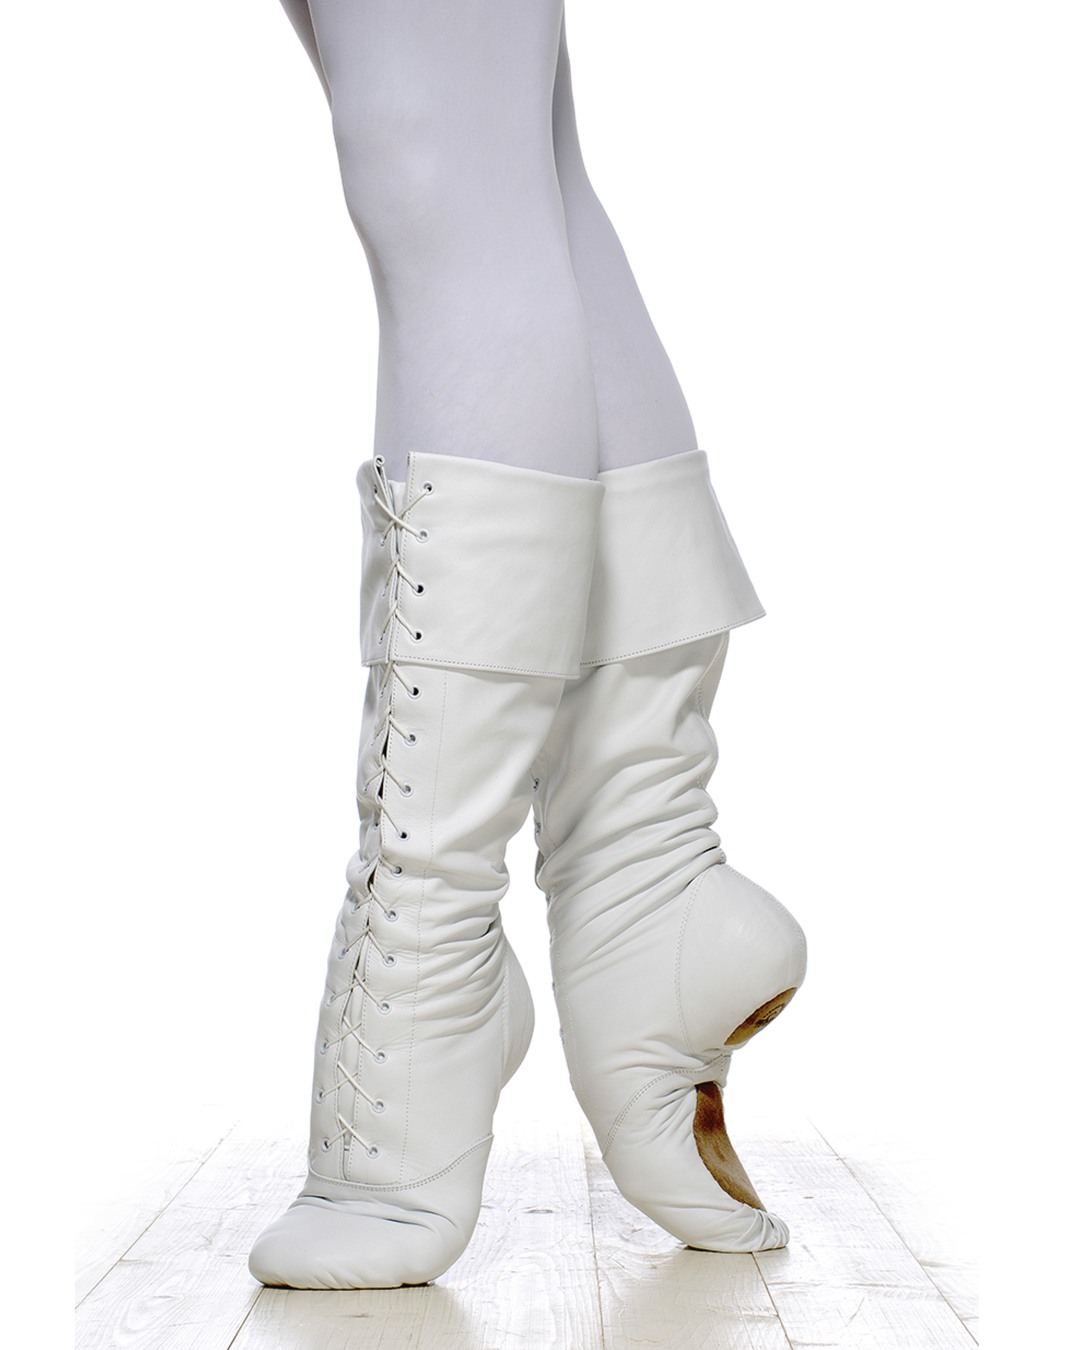 Laced up male ballet boot with pleats and laces